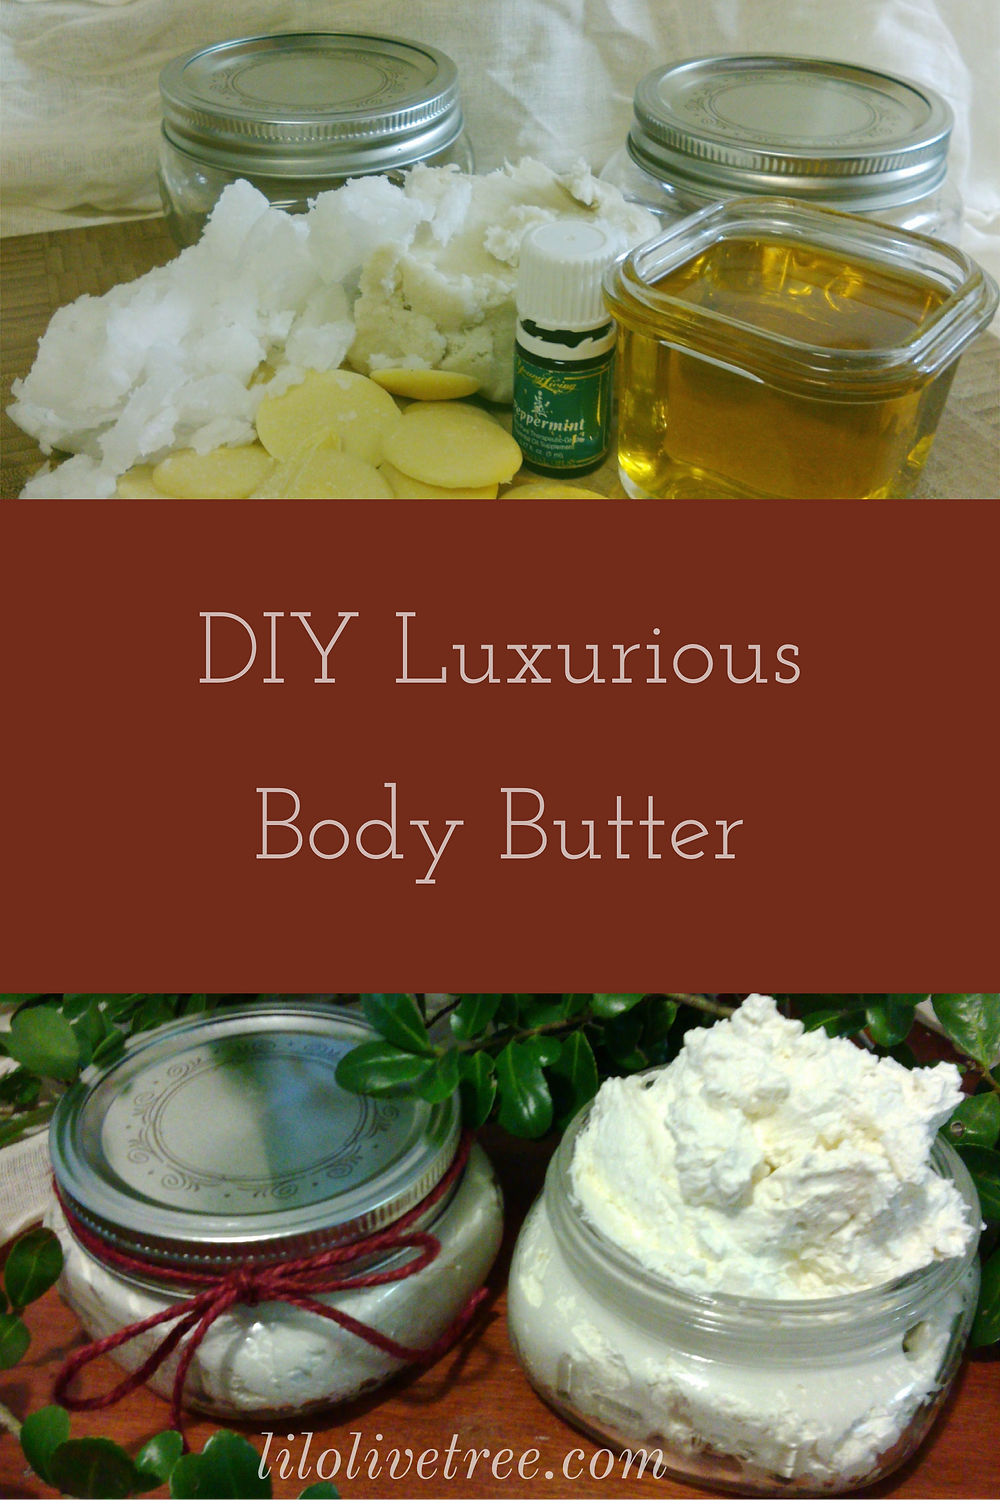 DIY Luxurious Body Butter: The perfect gift   #DIYbodybutter #perfectgift #DIY #smoothskin